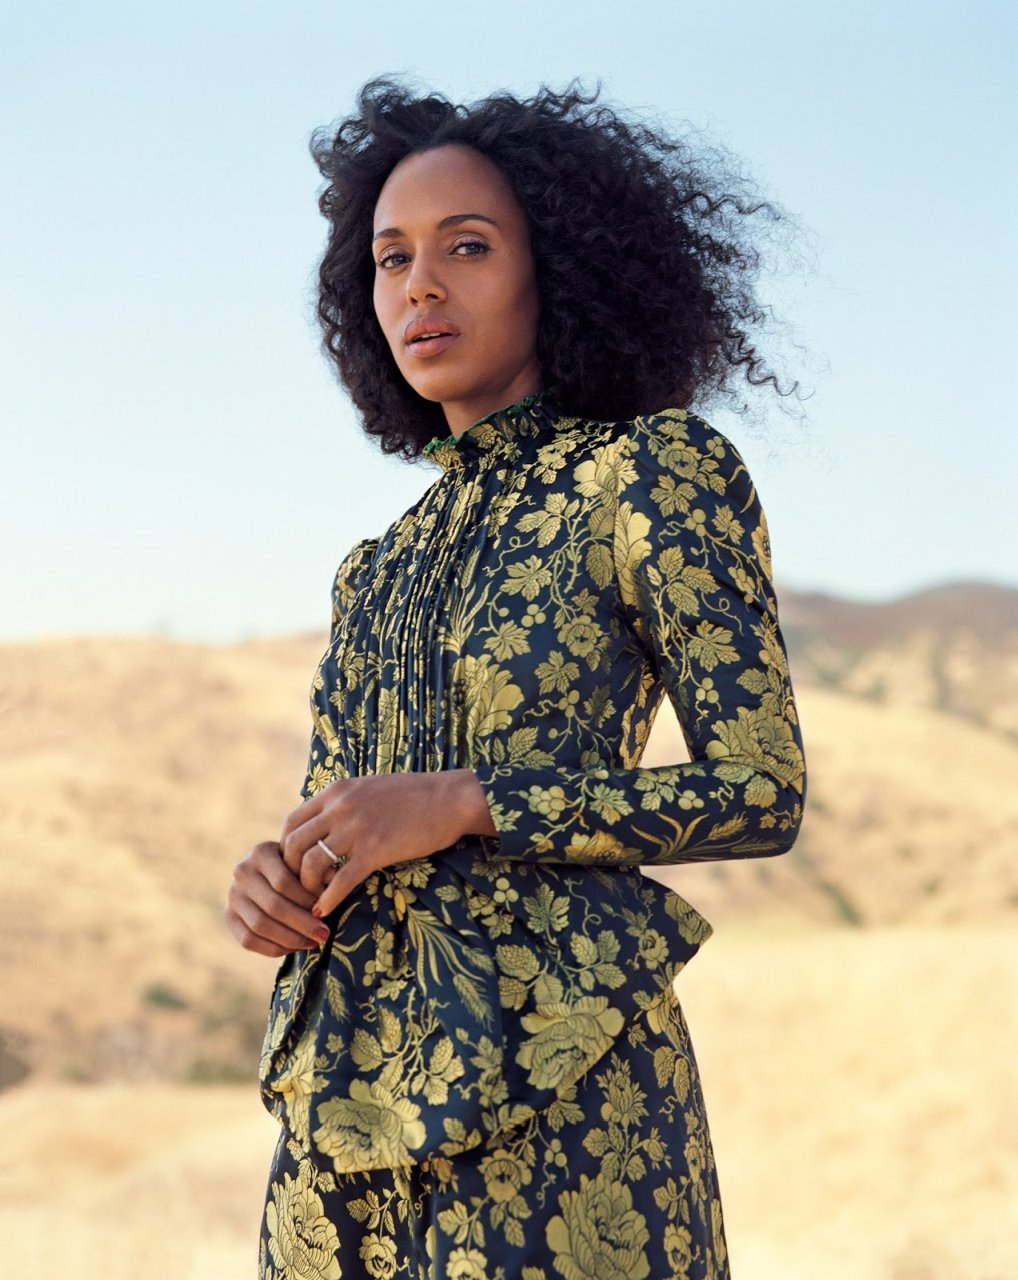 55 Hot Pictures Of Kerry Washington Are Delight For Fans